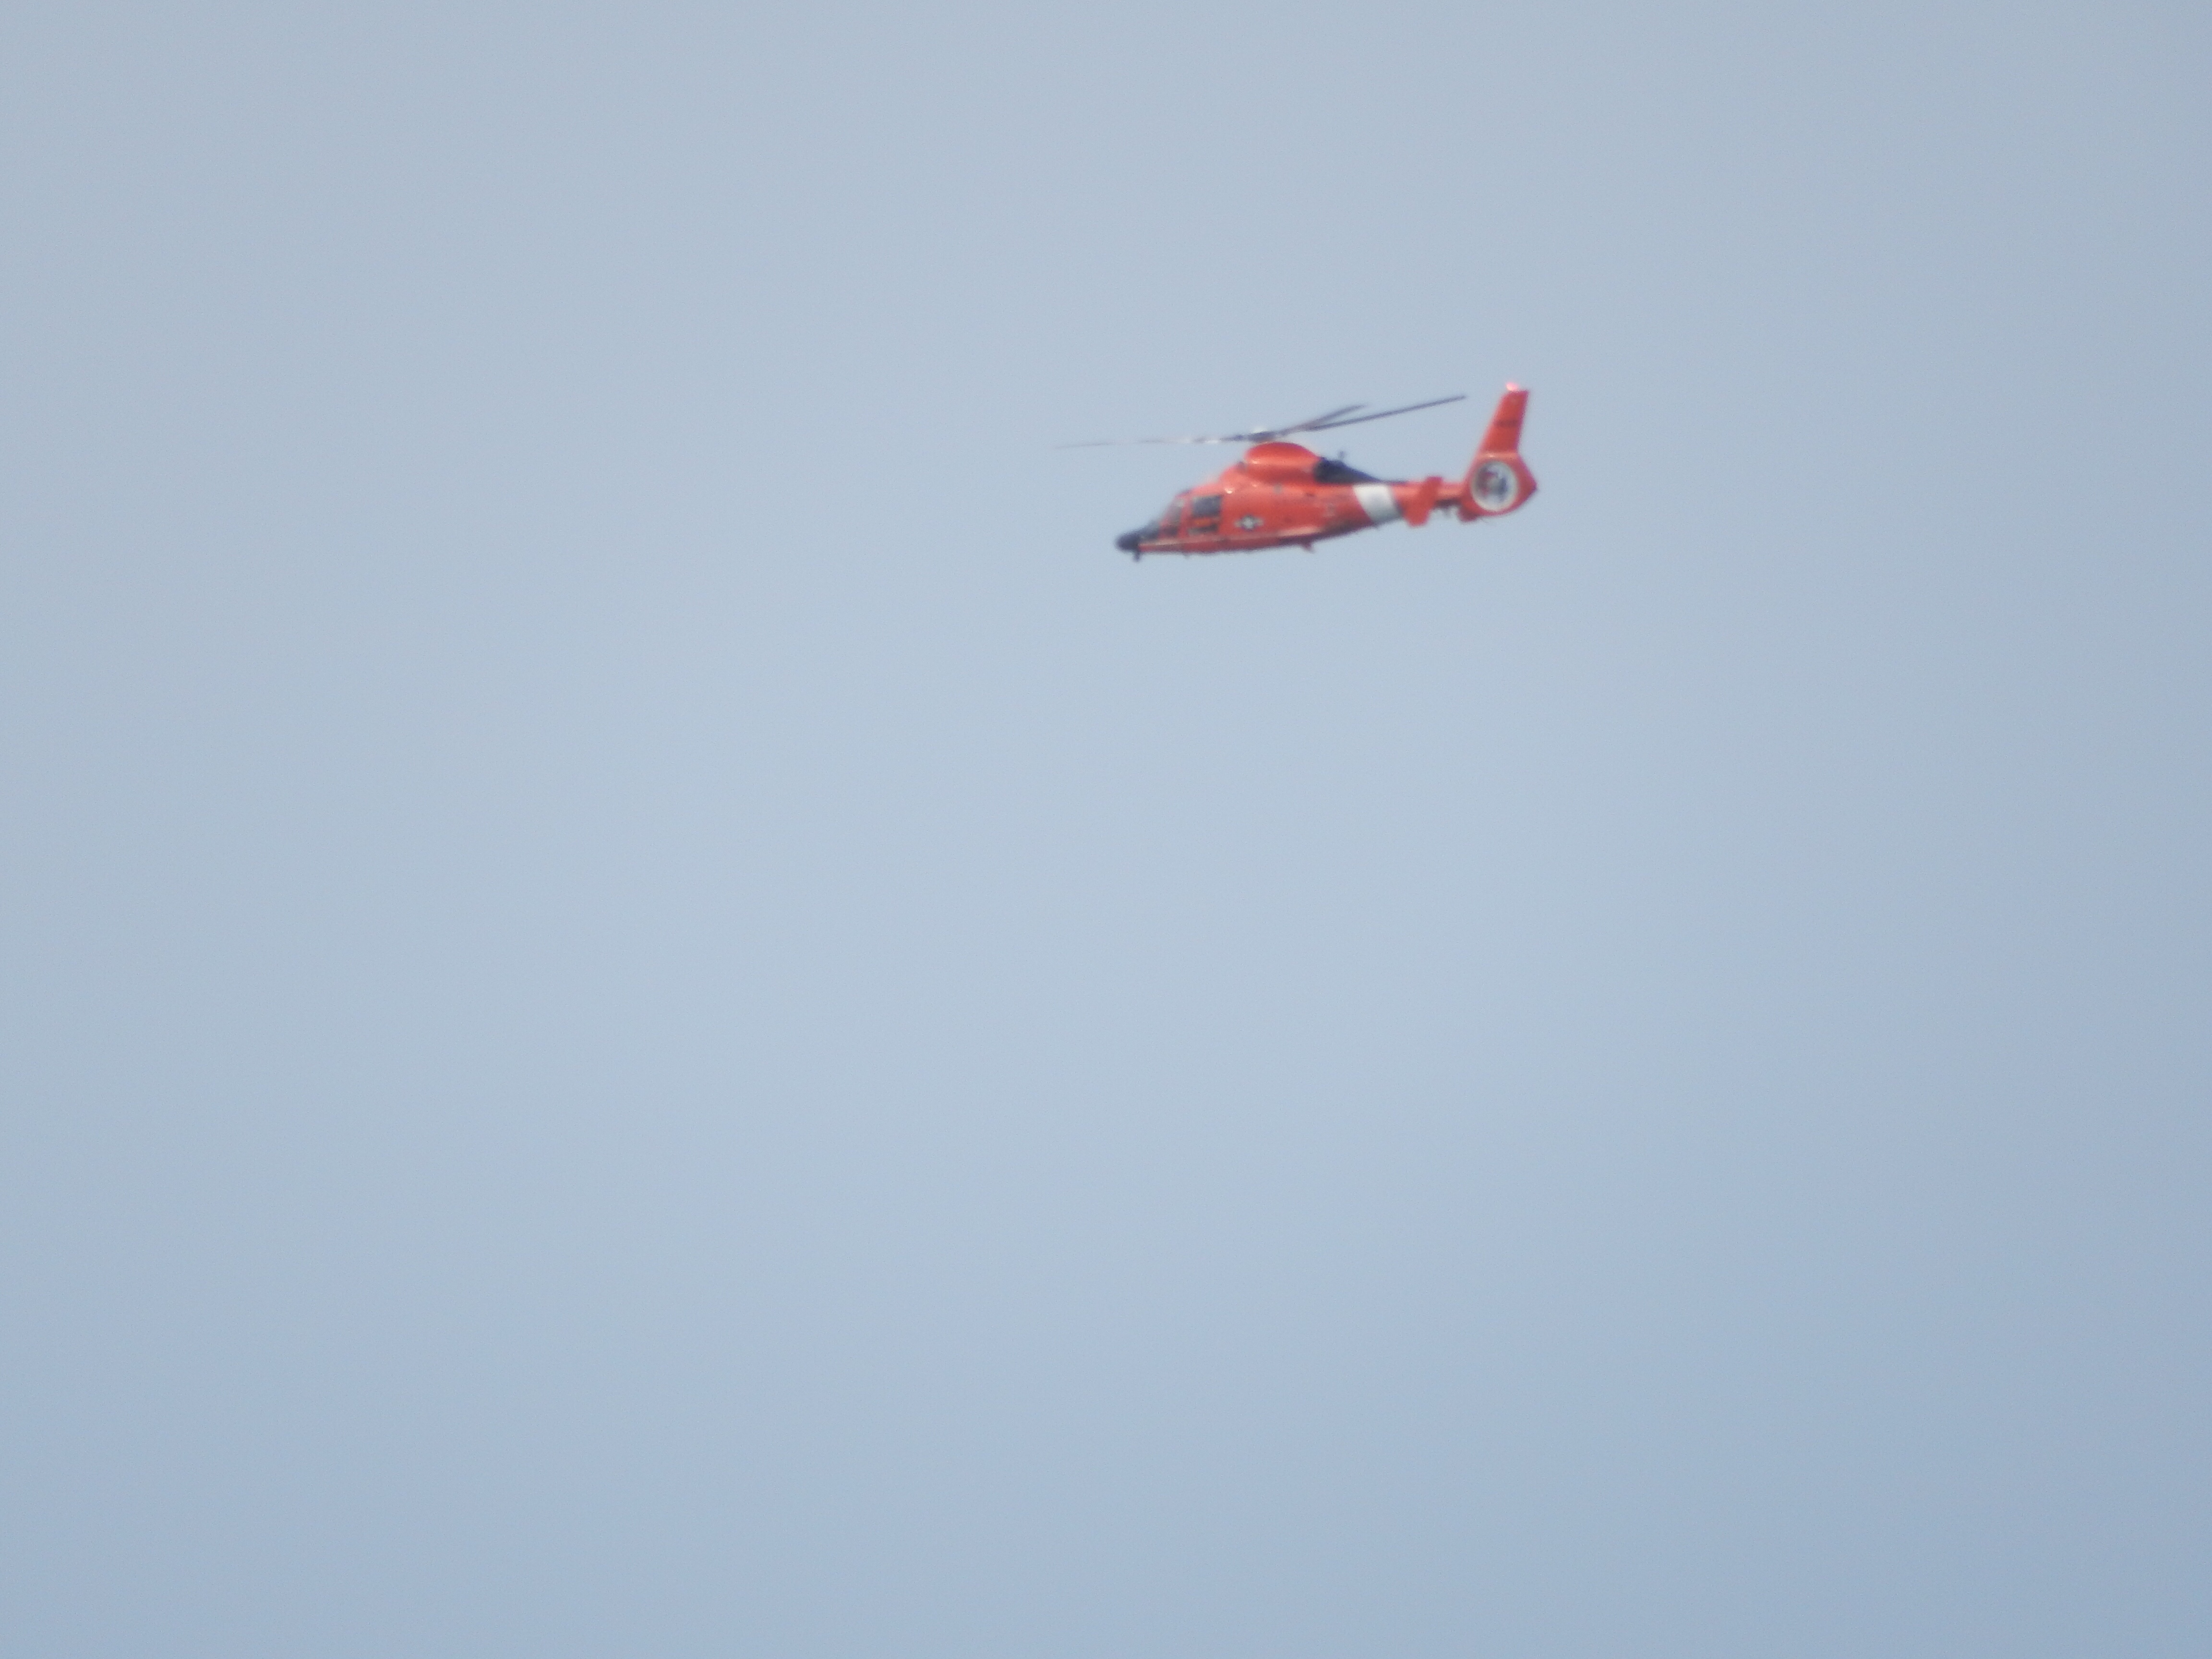 A poor shot of a US Coast Guard chopper heading south along the coast in a hurry.